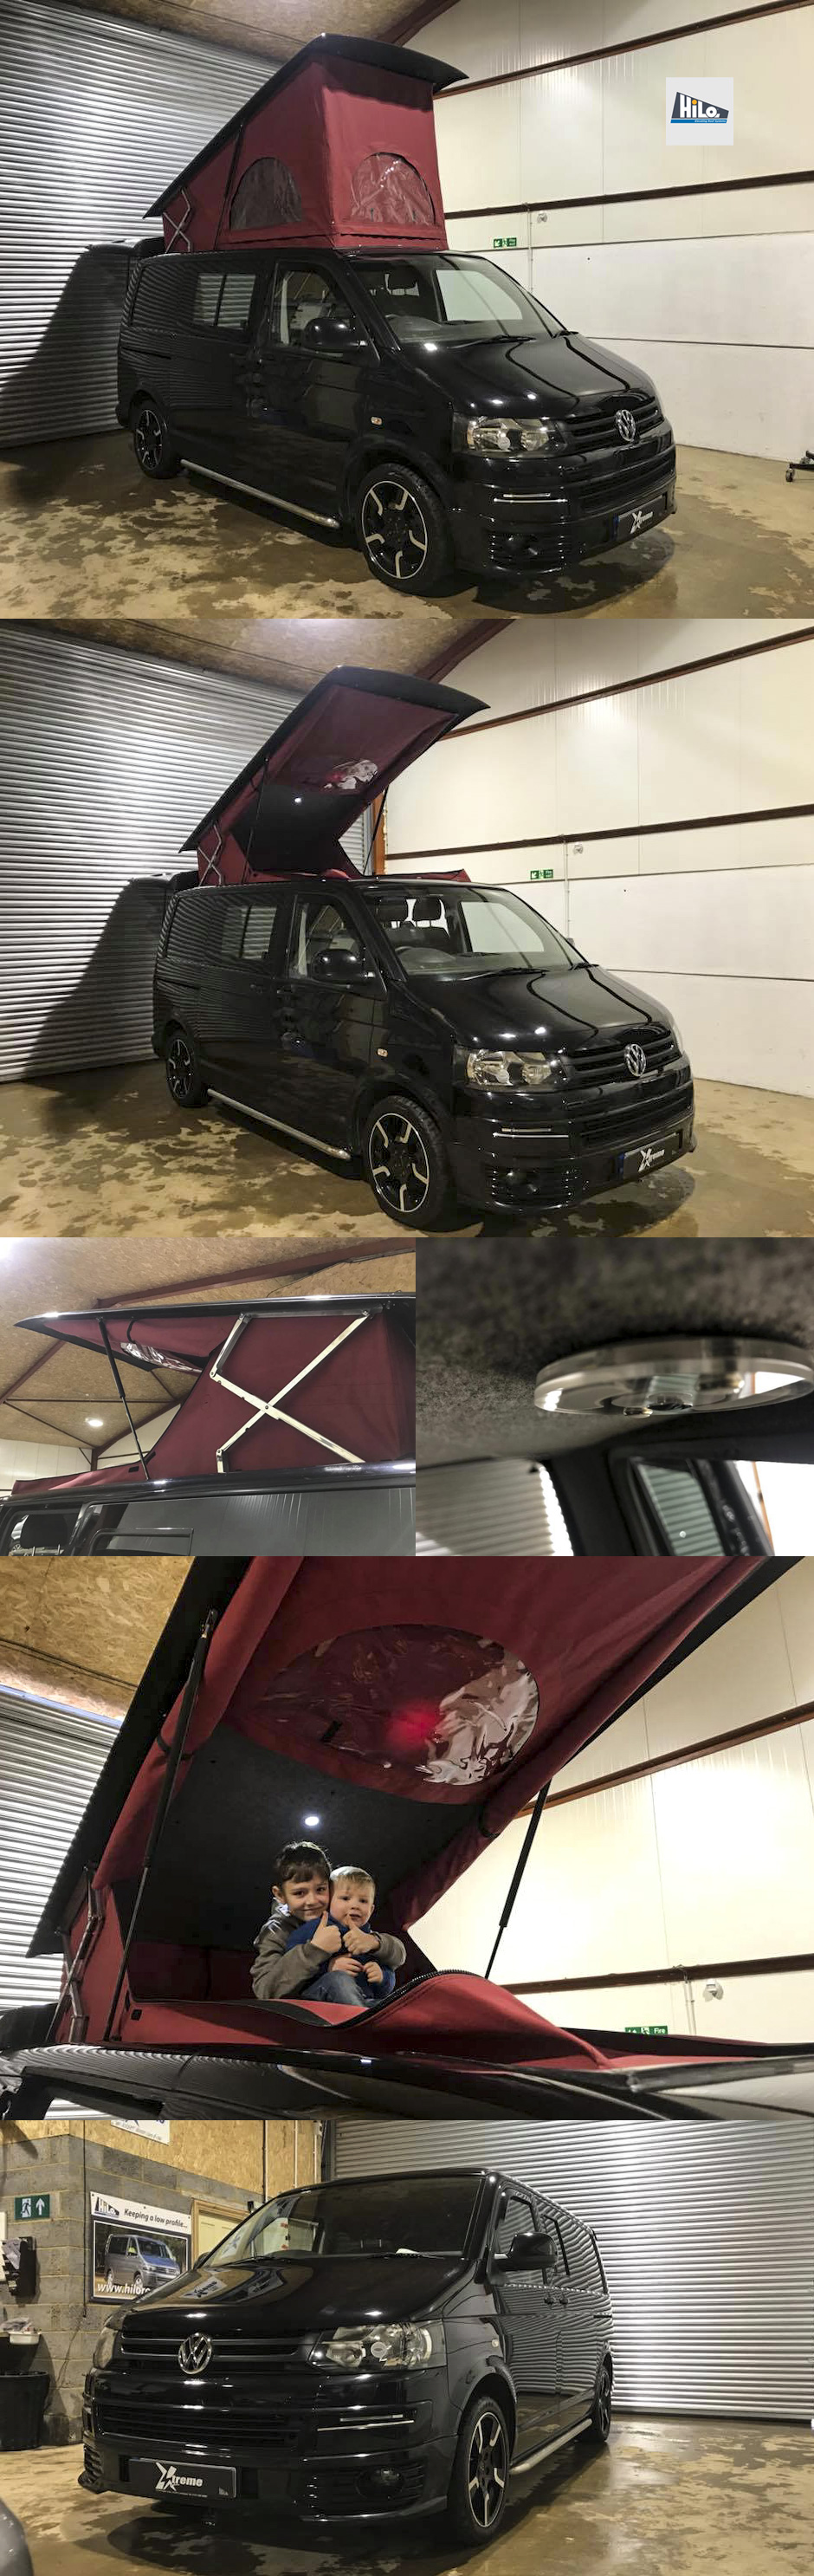 xtremevan hilo roof vw t6 van conversion